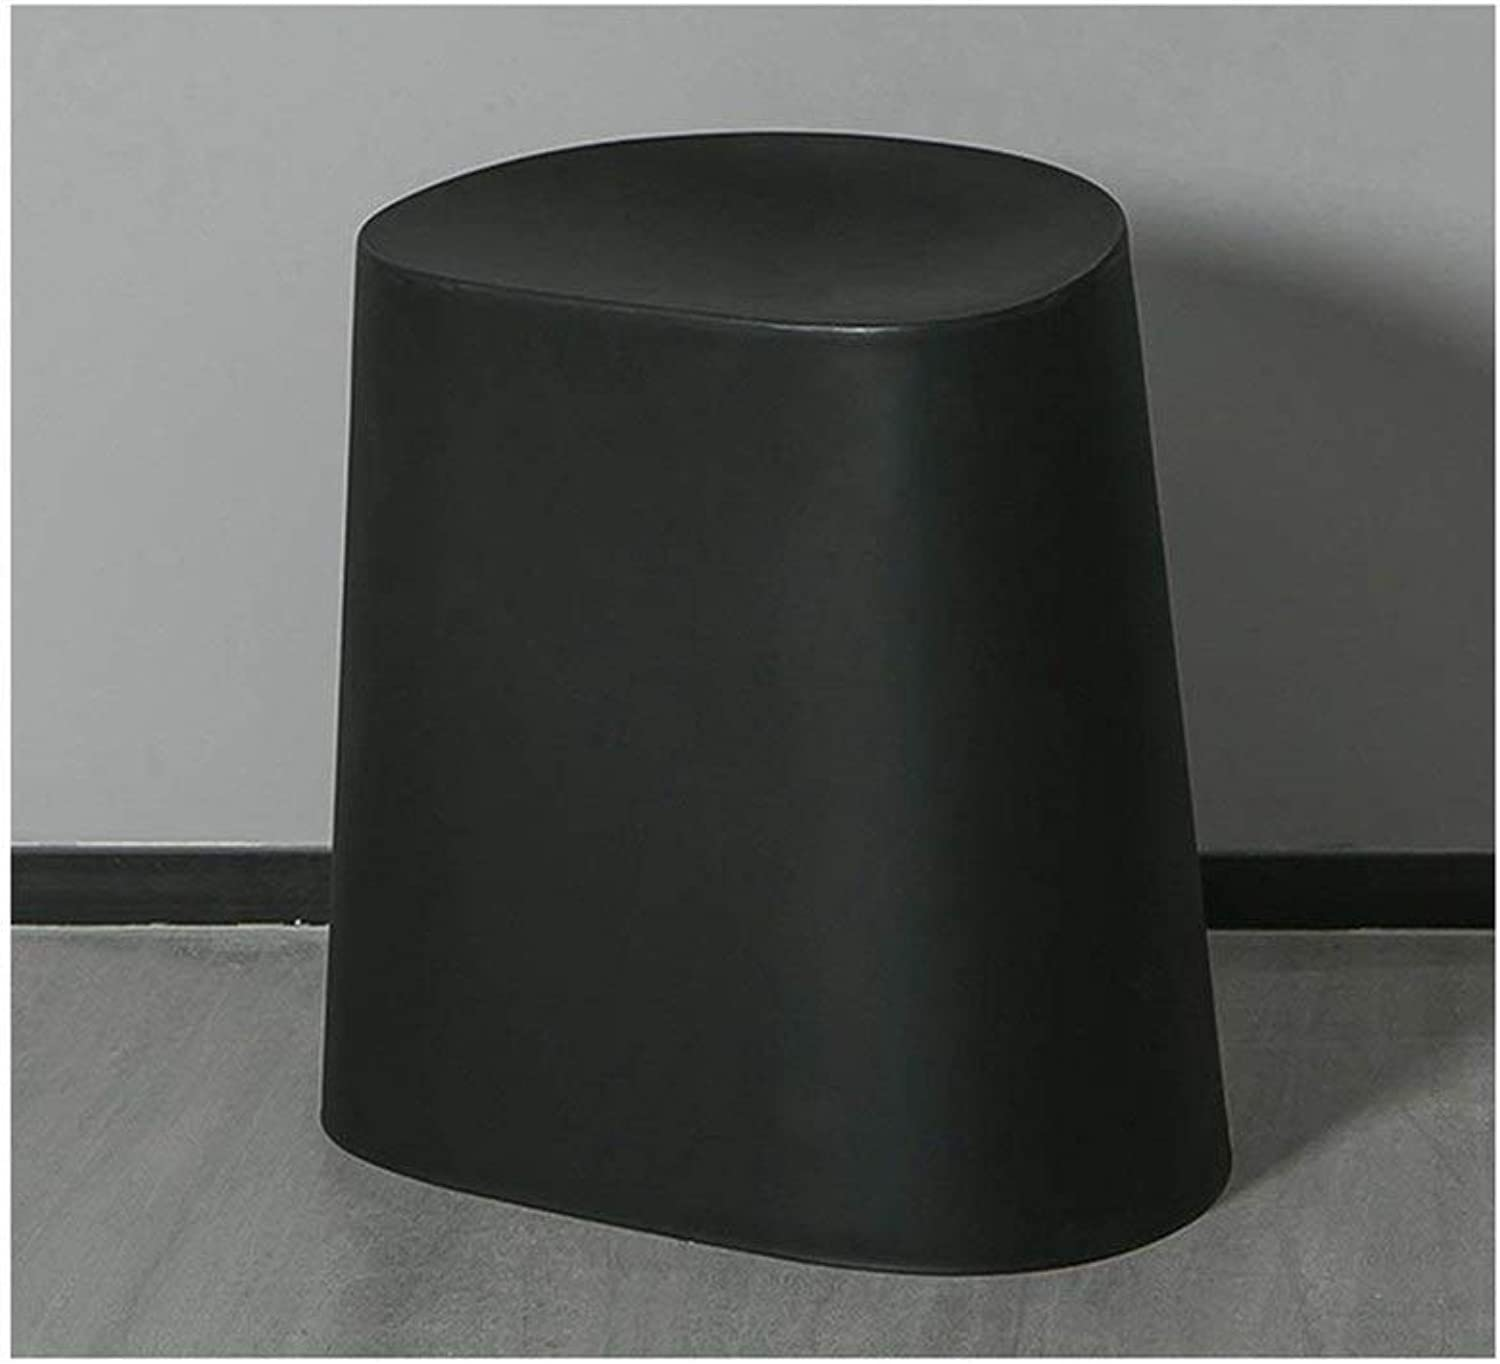 Nordic Minimalist Creative Stool shoes Bench Can Be Stacked Small Stools FENPING (color   Black)